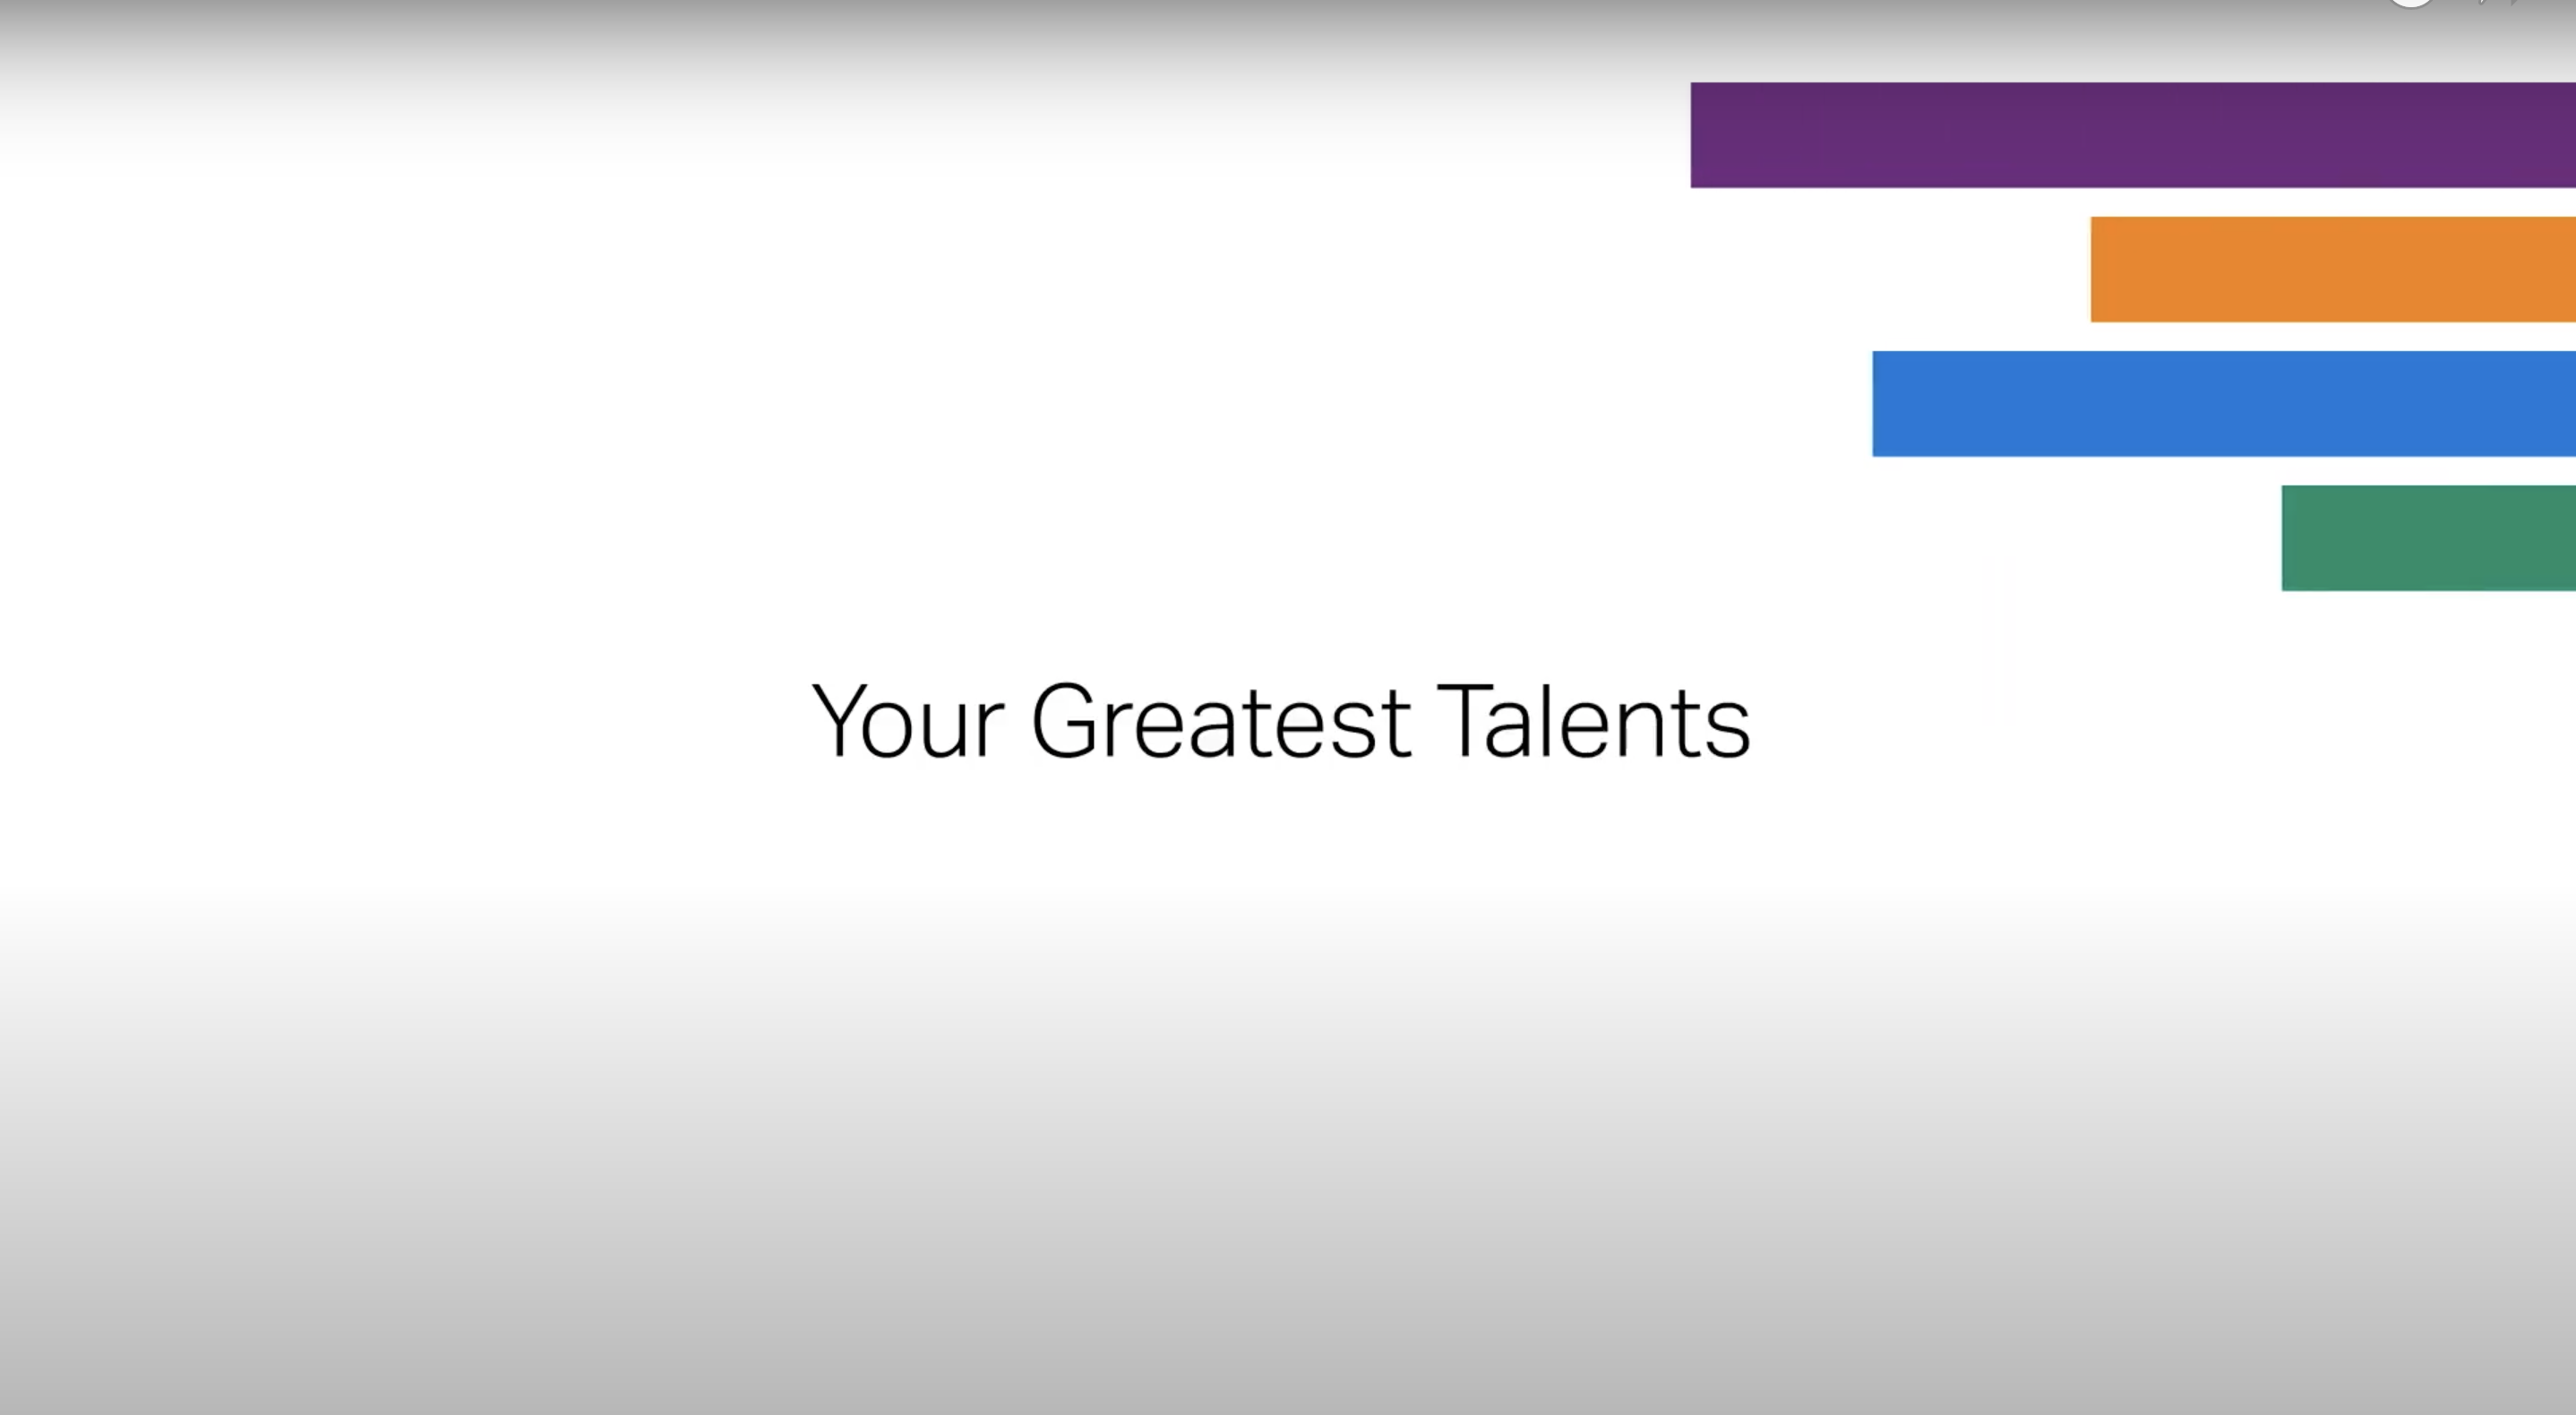 Your Greatest Talents